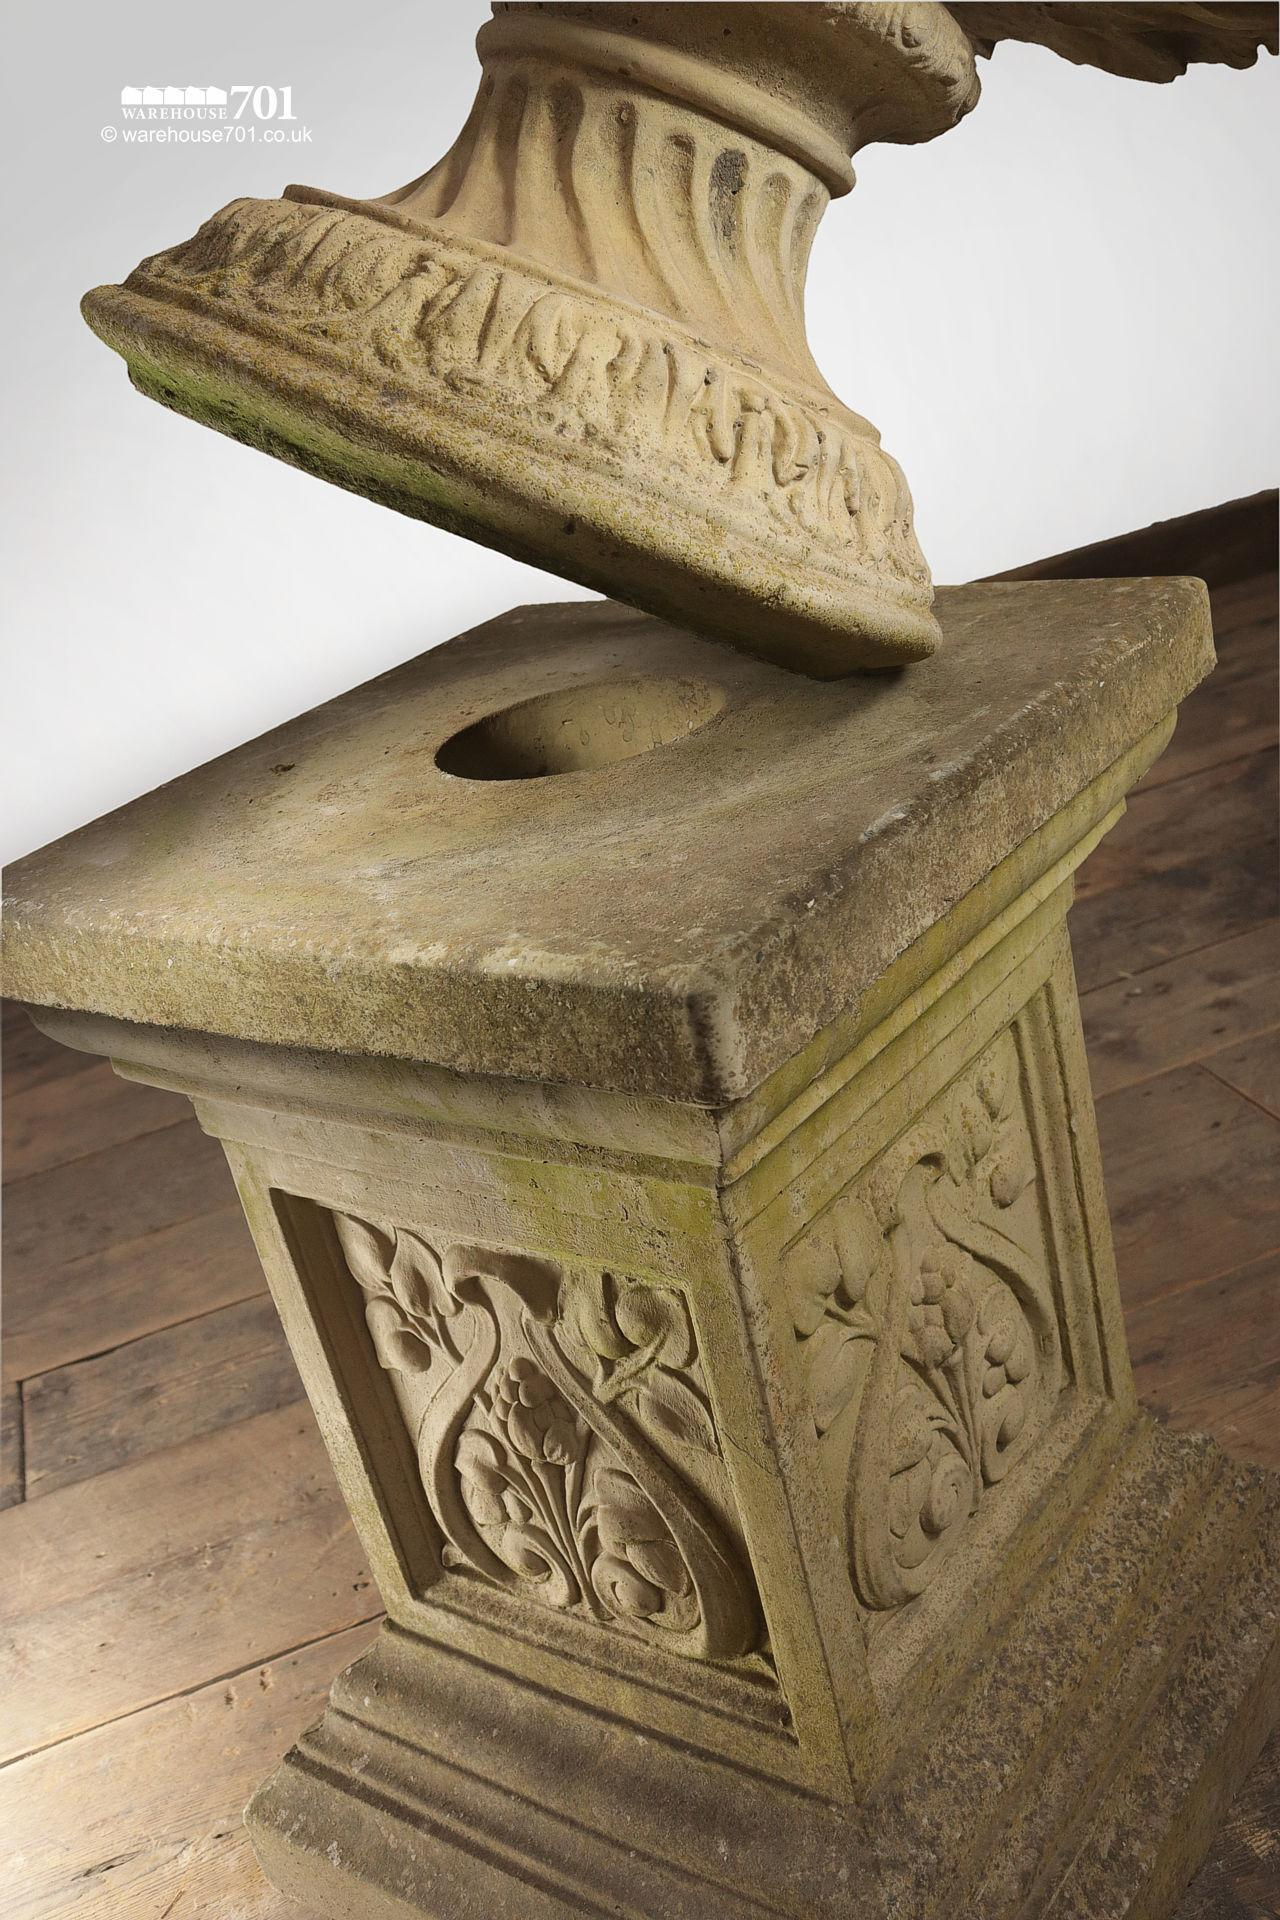 Pair of composite Floral Stone Urns on Plinths #7